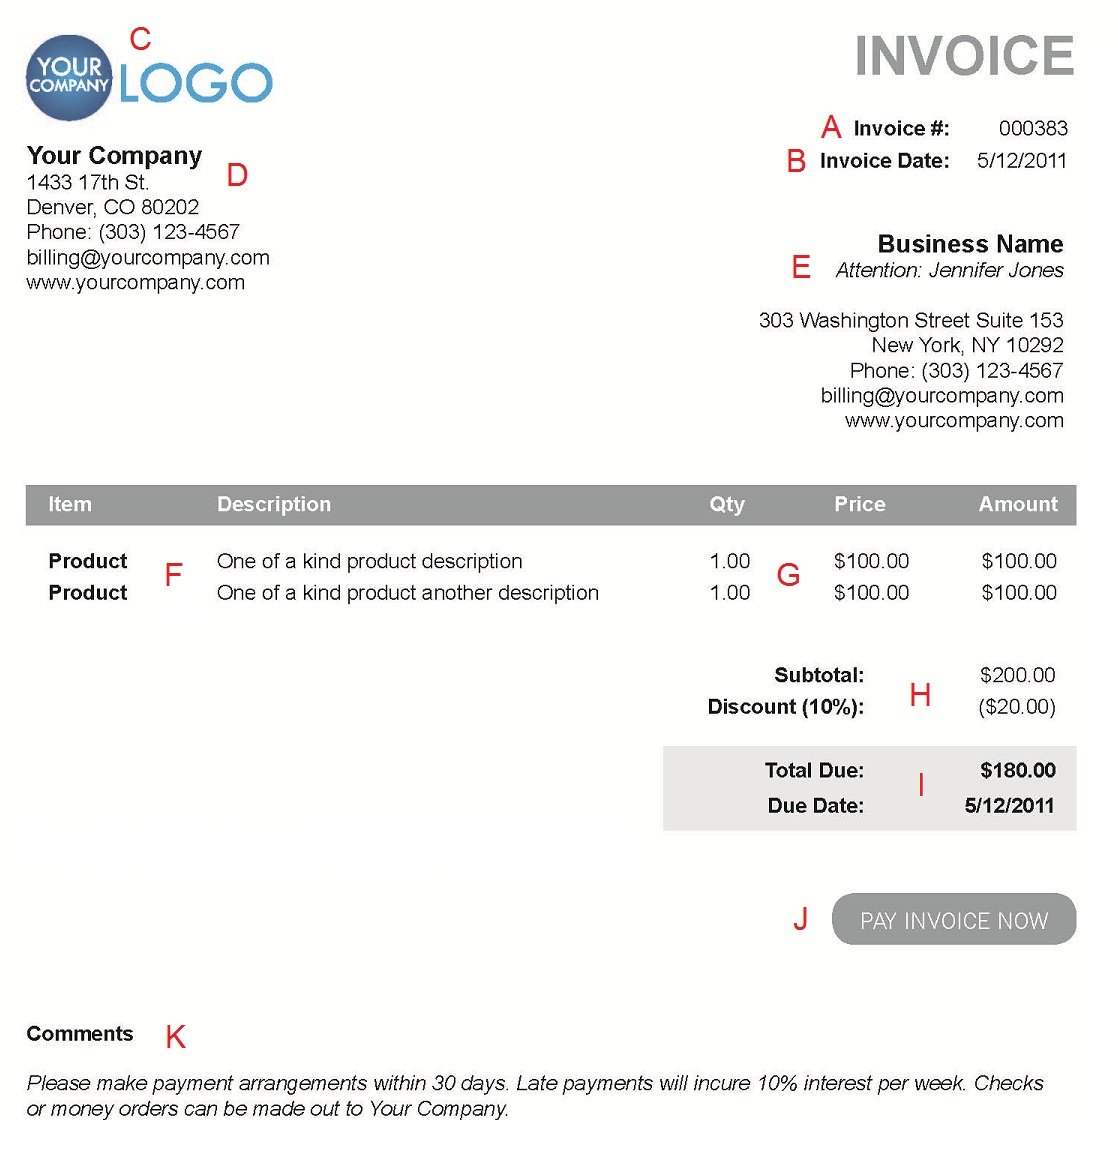 Pigbrotherus  Inspiring The  Different Sections Of An Electronic Payment Invoice With Great A  With Astounding Receipts For Payments Template Also Proof Of Payment Receipt Template In Addition What Is Receipt Money And Receipt Books Printed As Well As Cash Receipt System Additionally Mahadiscom Online Bill Payment Receipt From Paysimplecom With Pigbrotherus  Great The  Different Sections Of An Electronic Payment Invoice With Astounding A  And Inspiring Receipts For Payments Template Also Proof Of Payment Receipt Template In Addition What Is Receipt Money From Paysimplecom